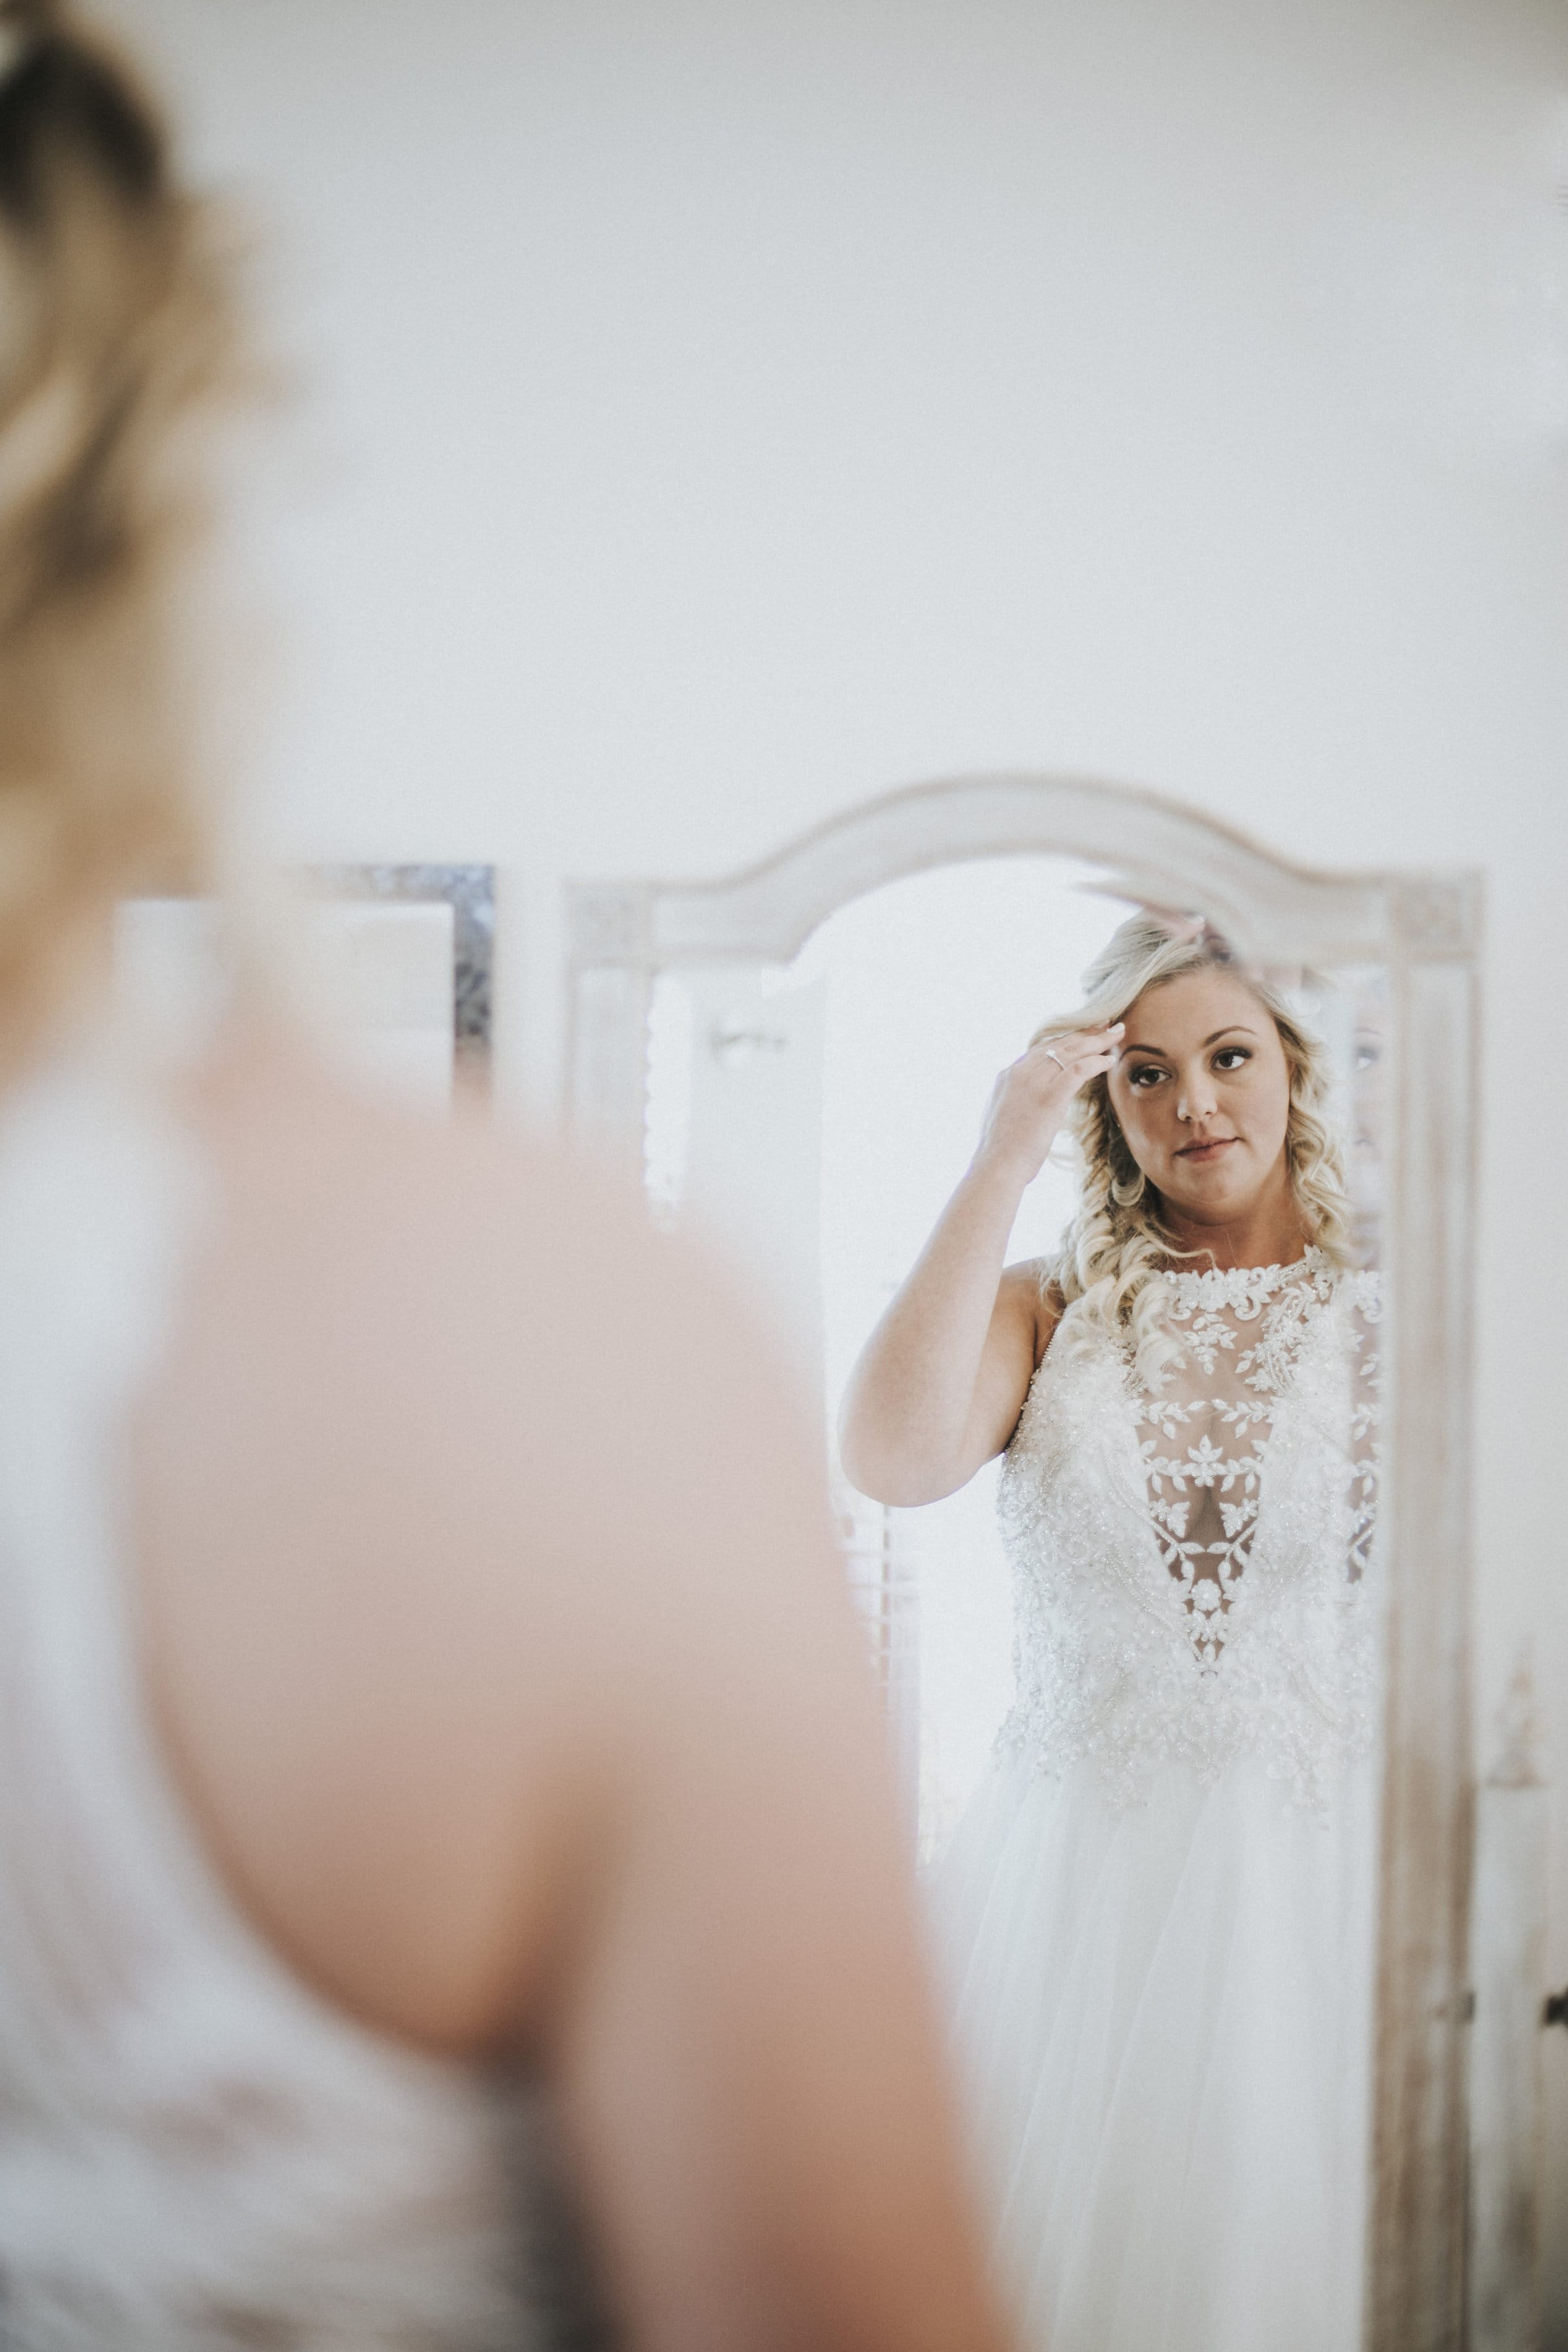 Crystal-Embellished Lace Wedding Dress in Rustic Wedding - Maggie Bride wearing Lisette by Maggie Sottero